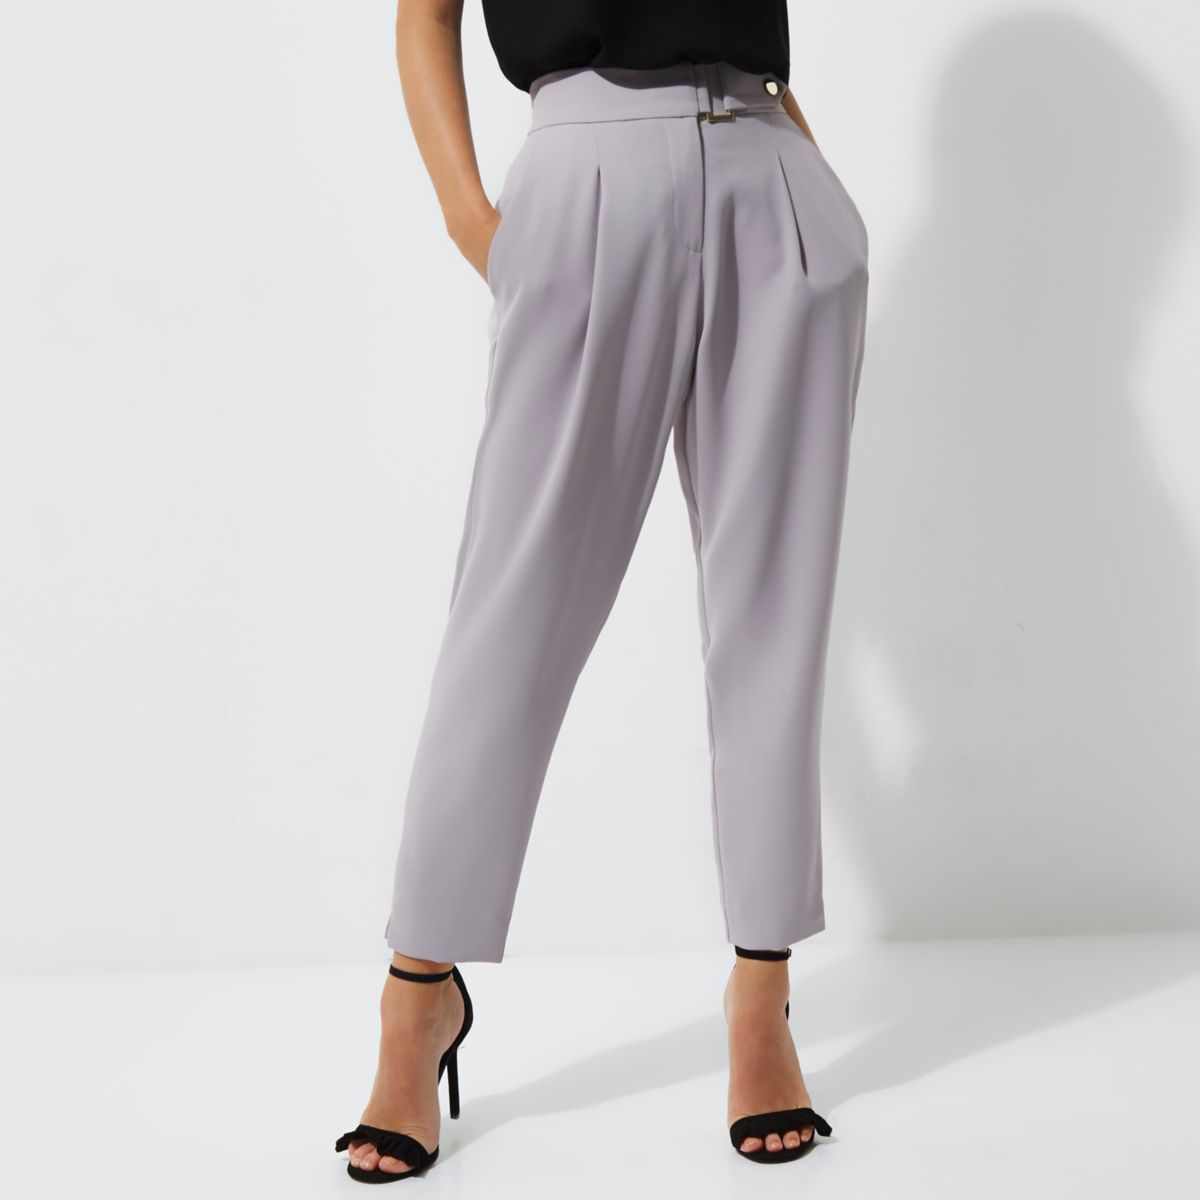 Shopping for petite scrub pants can be tiresome. Look no further because we offer all kinds of petite scrub pants to fit you perfectly. No more rolling up the hem of your scrub pants or folding the waist to ensure a secure fit - we've taken care of all the details for you!